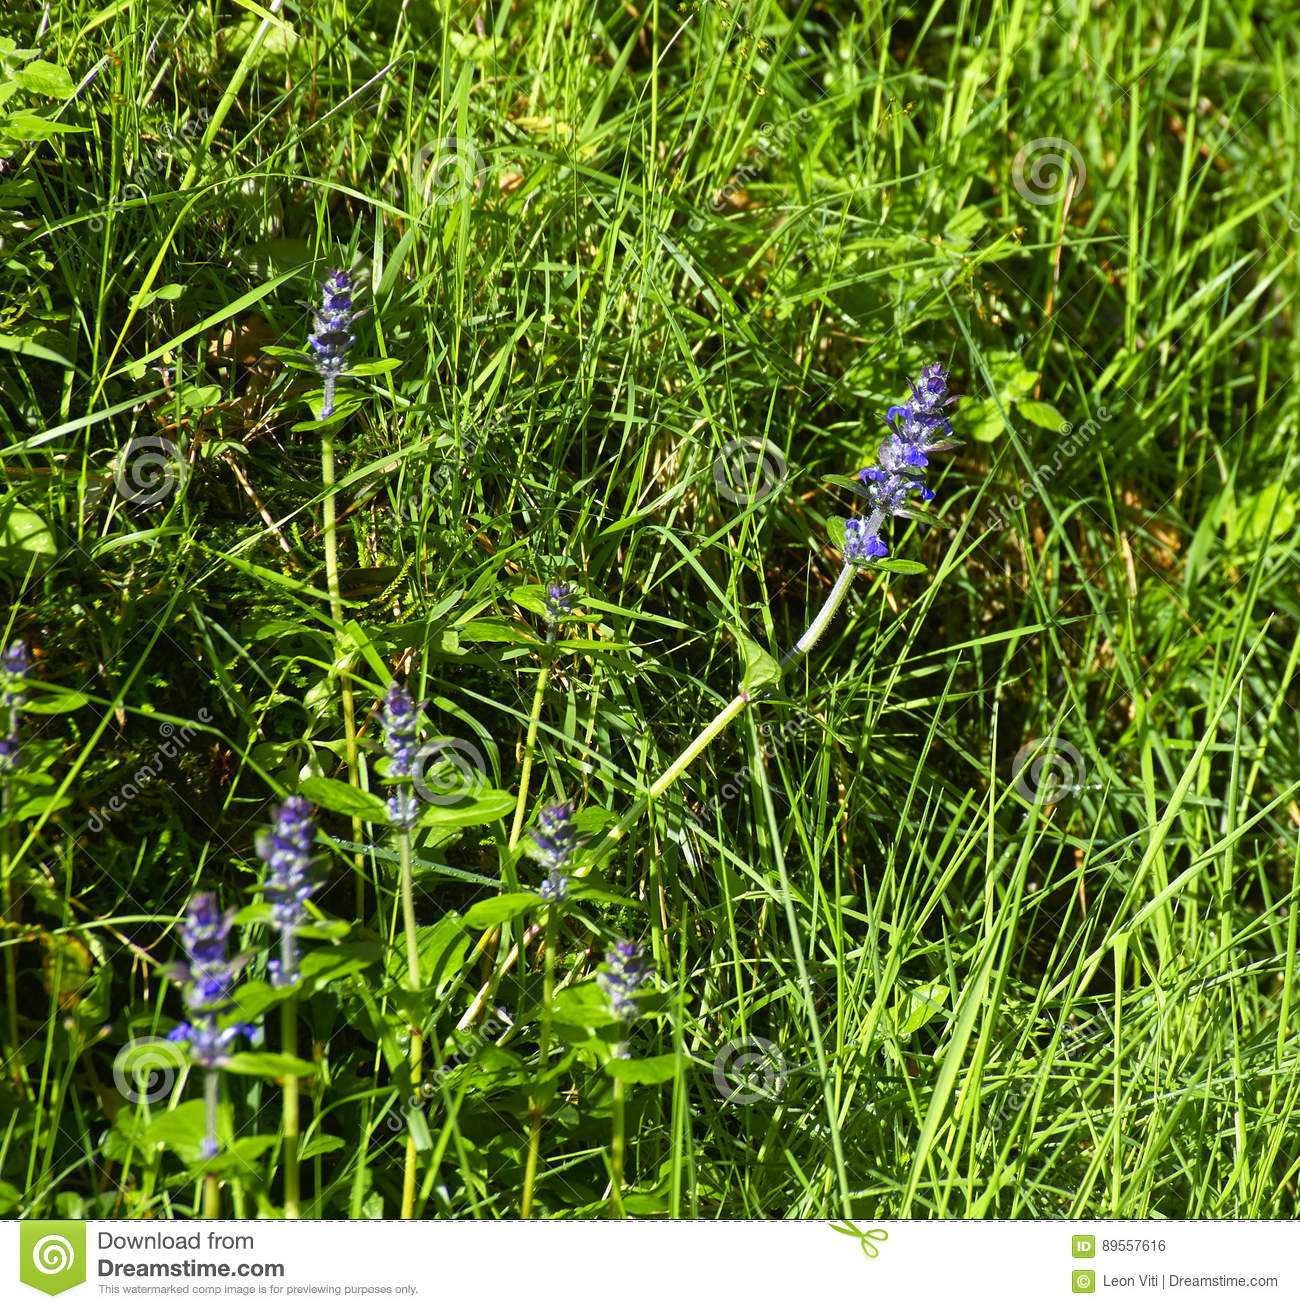 detail of Hyssopus officinalis plant in a meadow